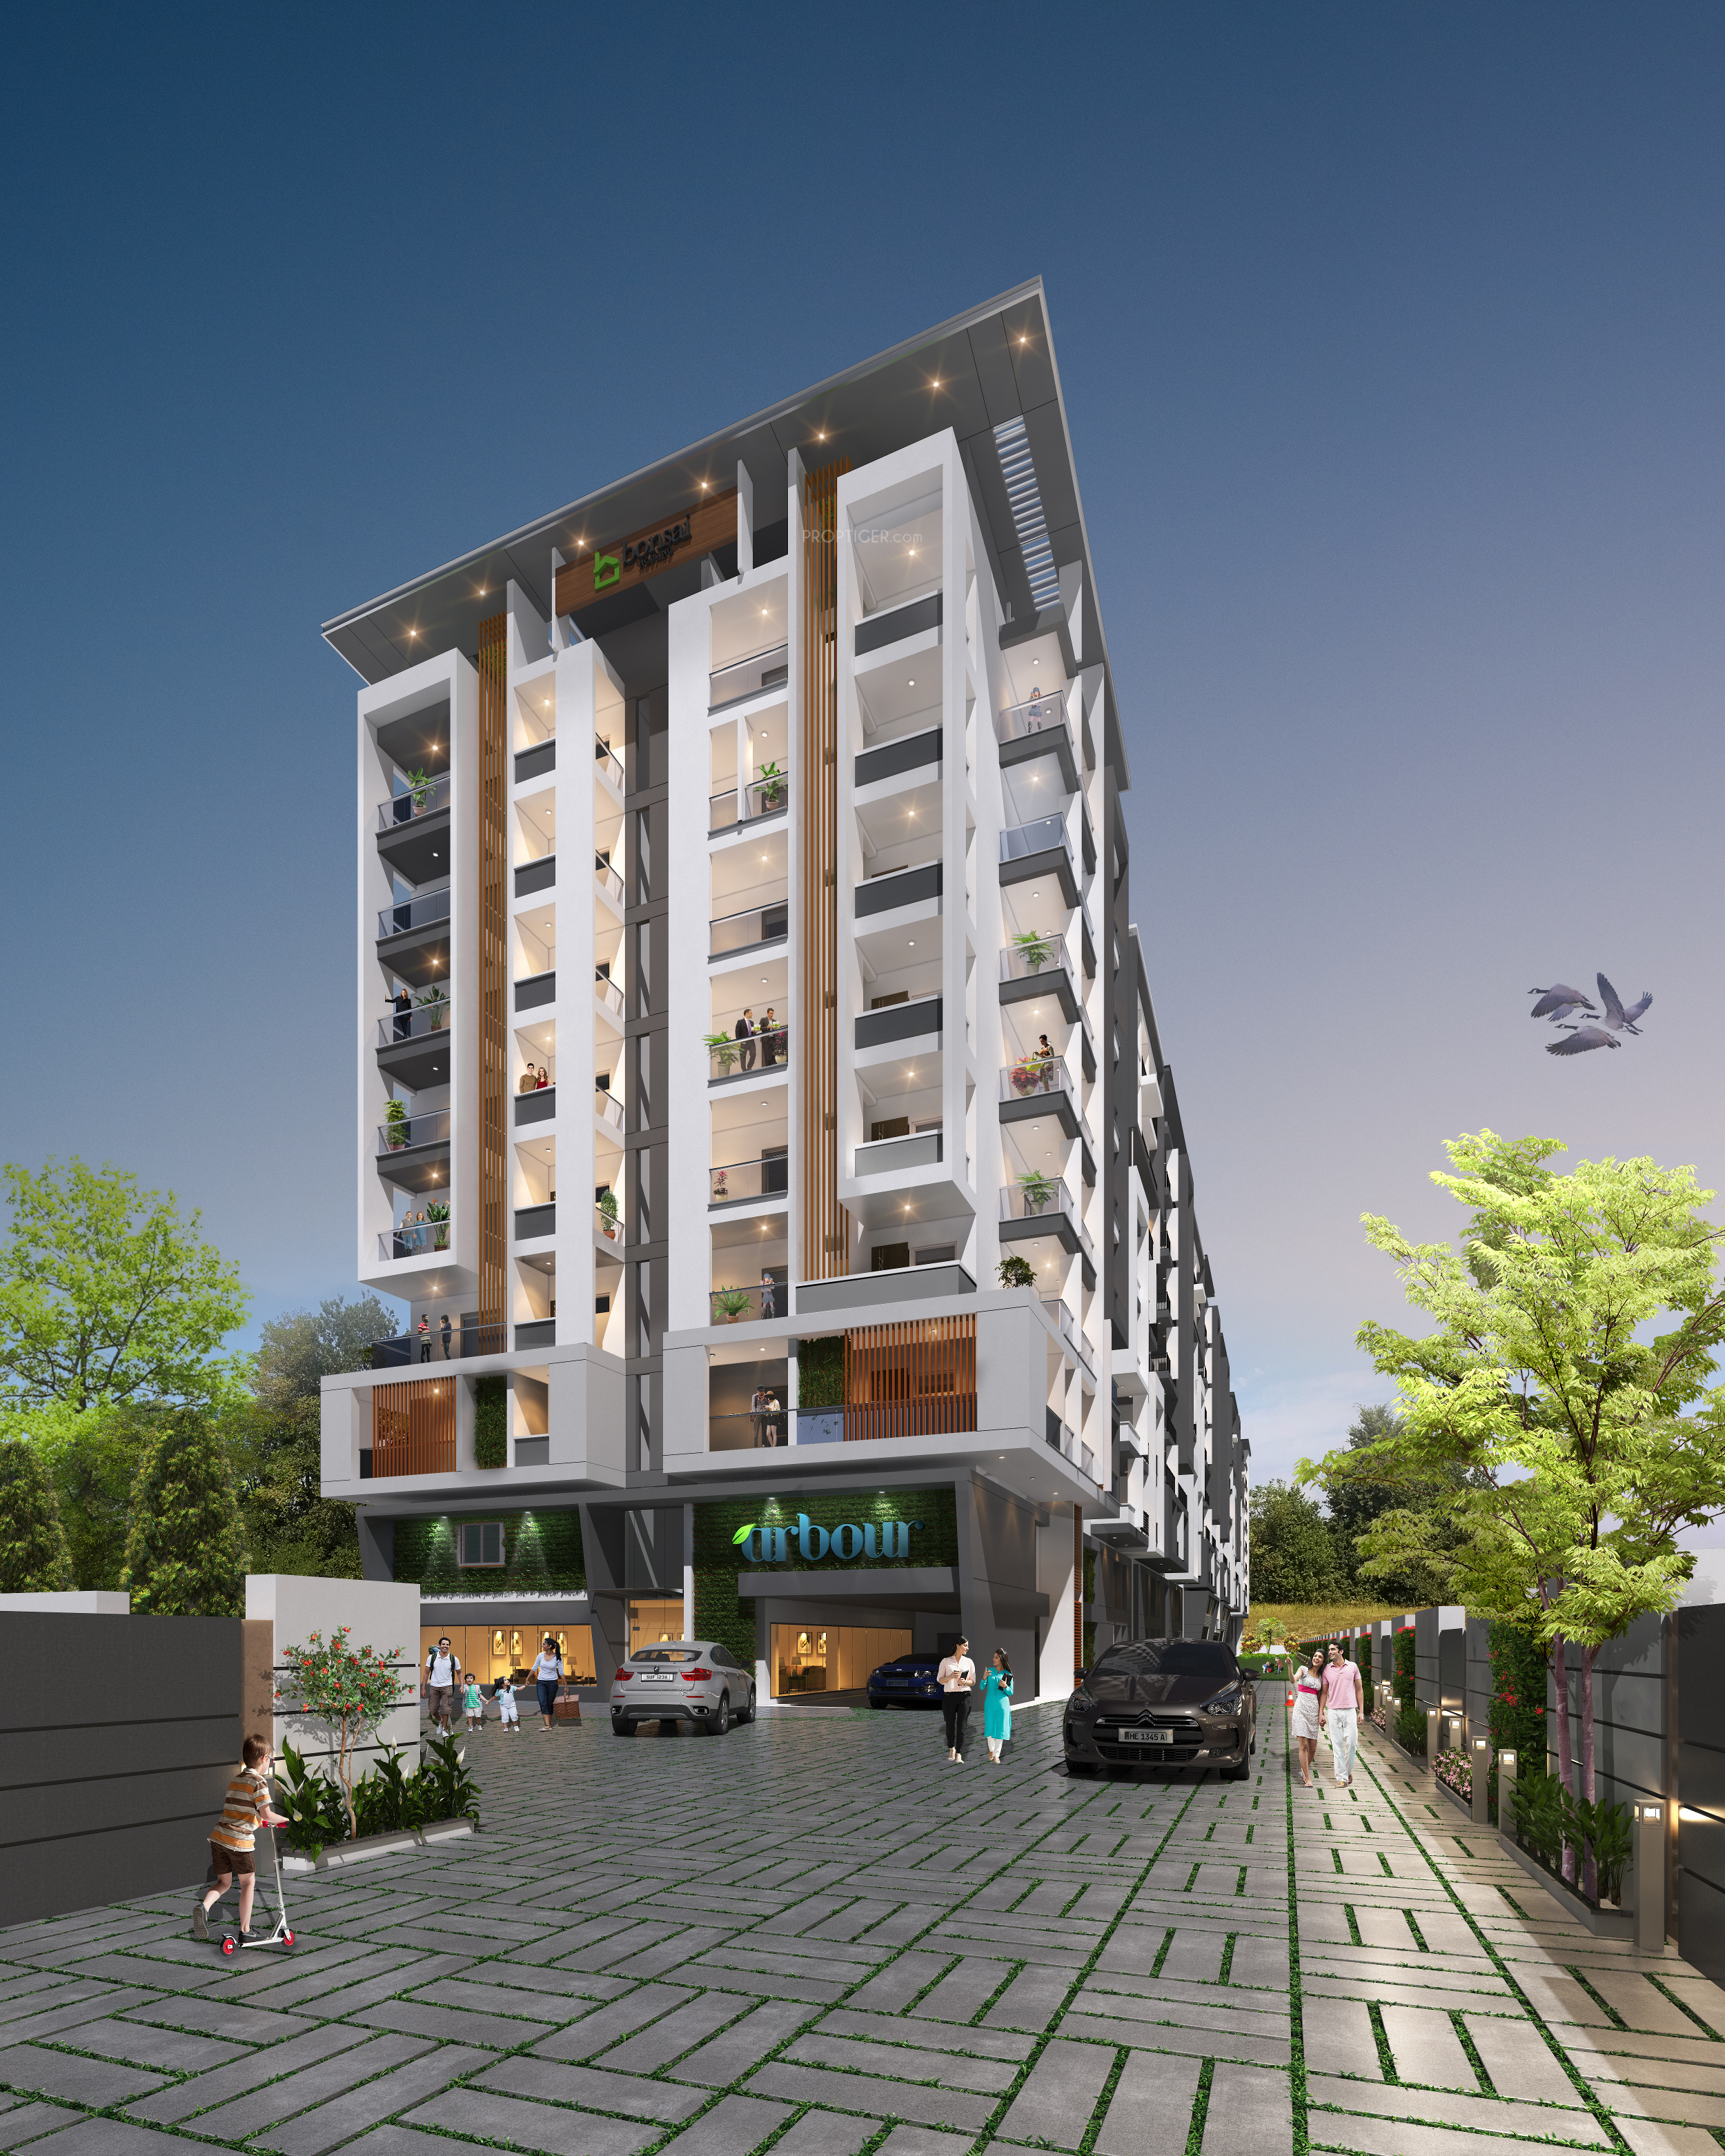 Bedroom Designs From Professionals In Hyderabad  C2NyYXBlLTEtRHBWSGVH: 1236 Sq Ft 2 BHK 2T Apartment For Sale In Bonsai Housing